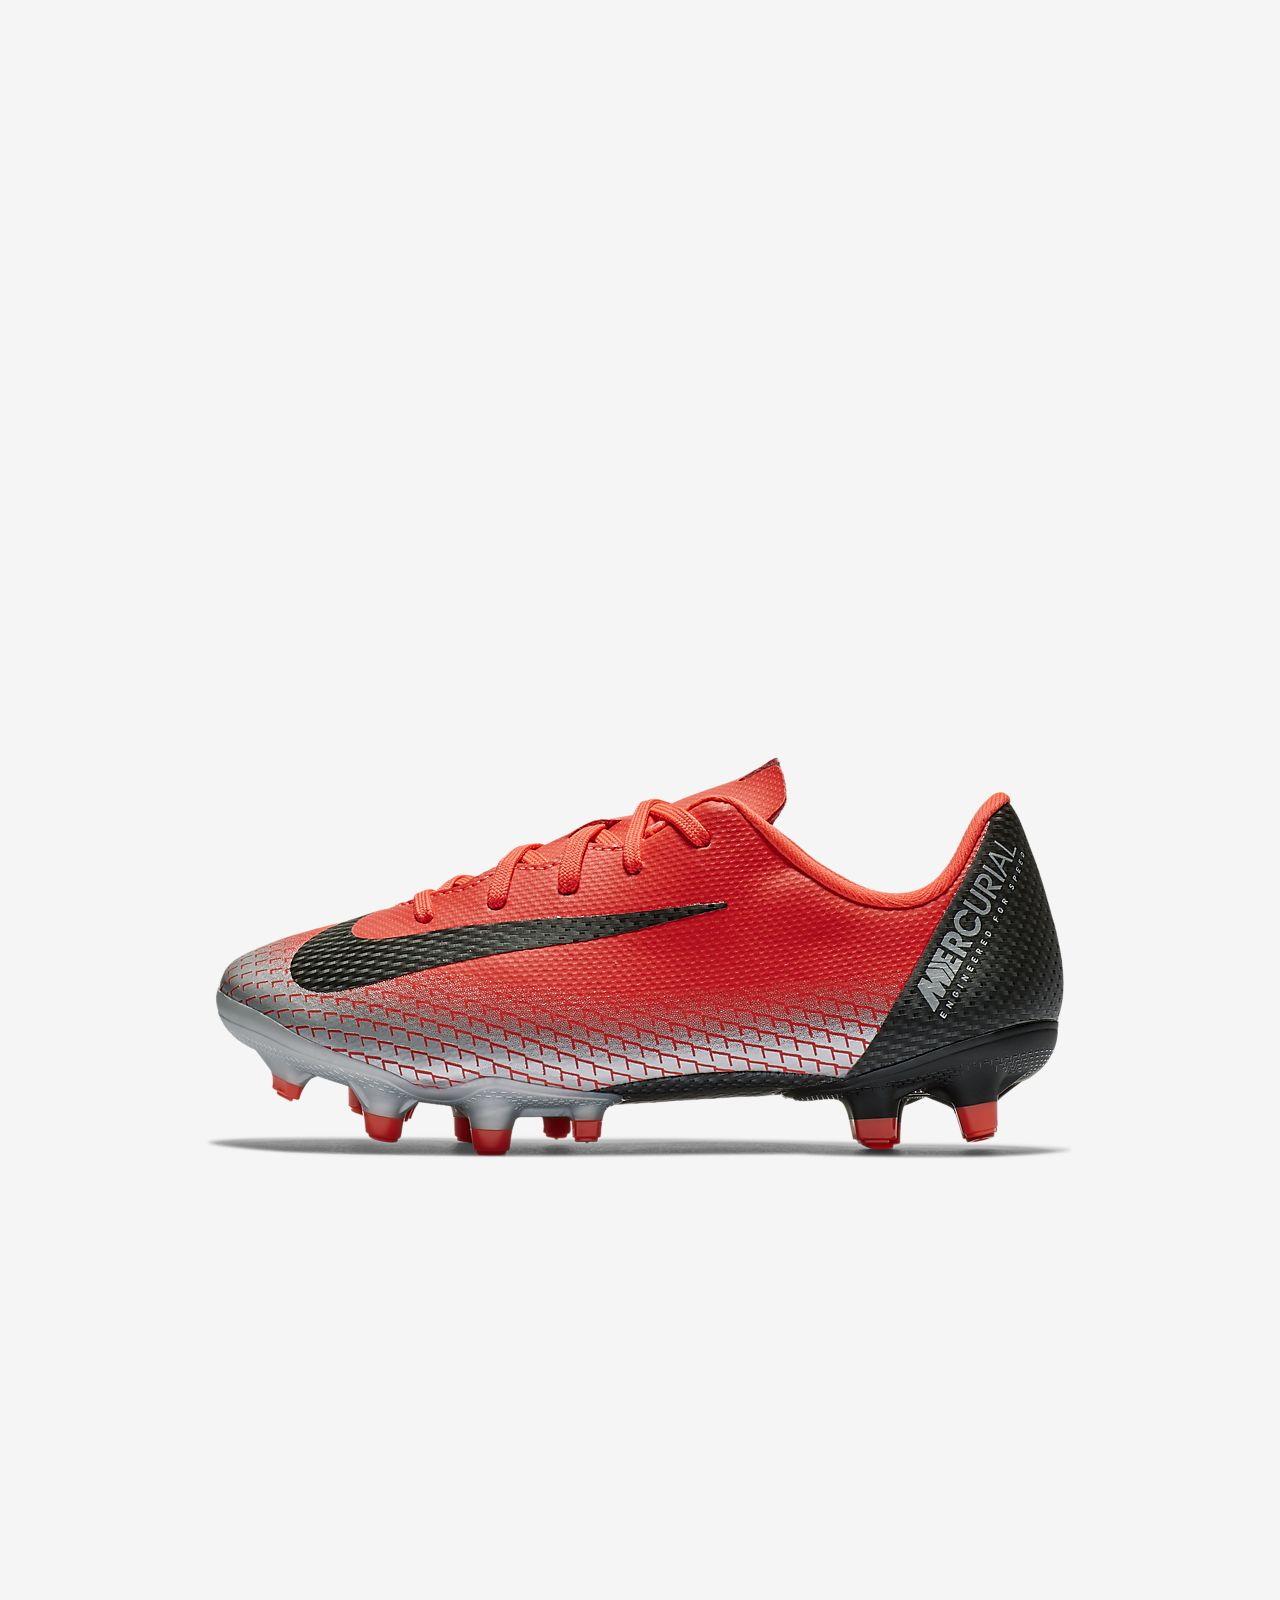 07823ca2bad5 Nike Jr. Mercurial Vapor XII Academy CR7 Younger Kids  Multi-Ground ...